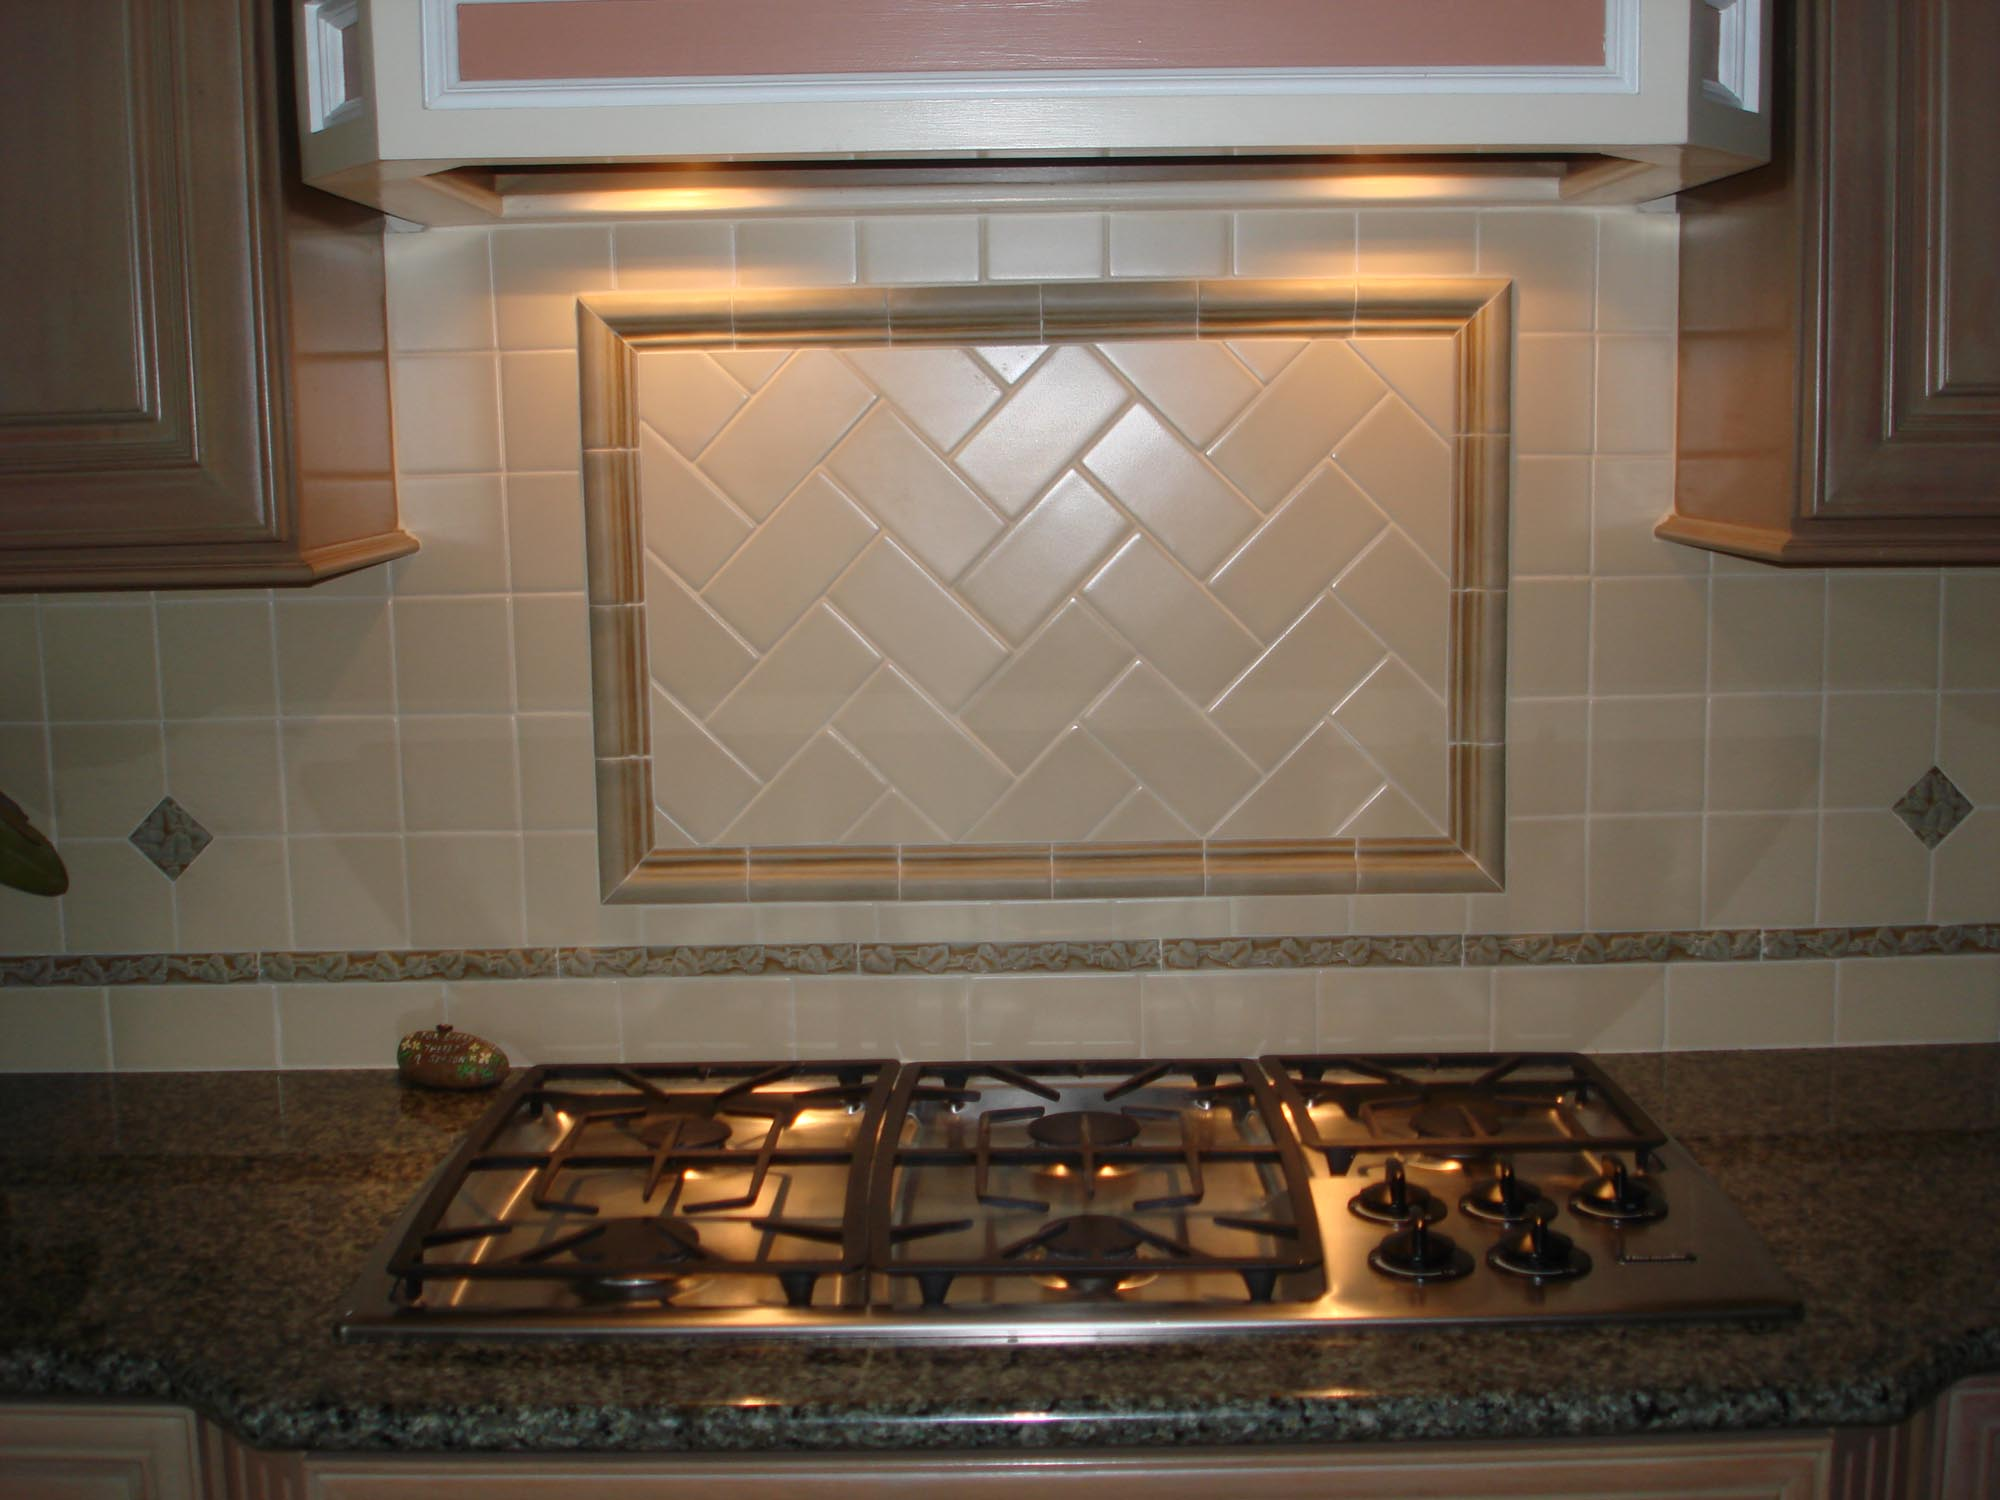 ceramic tile backsplash handmade ceramic kitchen backsplash turn power kitchen remove outlet covers